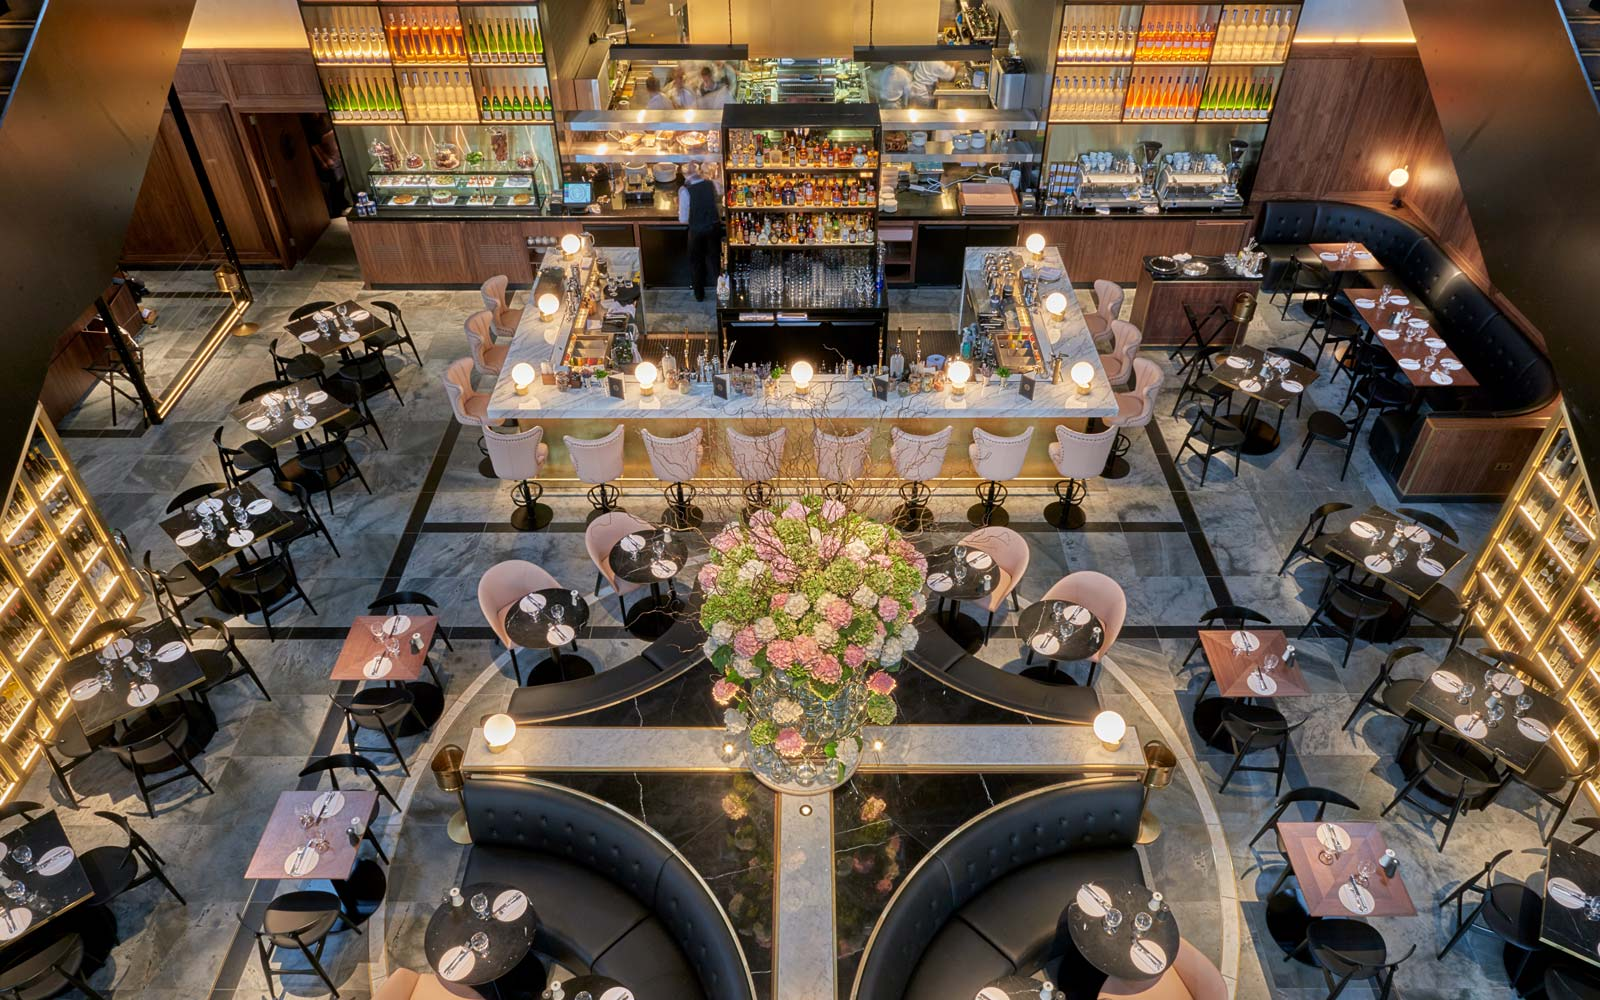 Is German Gymnasium the Most Beautiful Restaurant in the World?